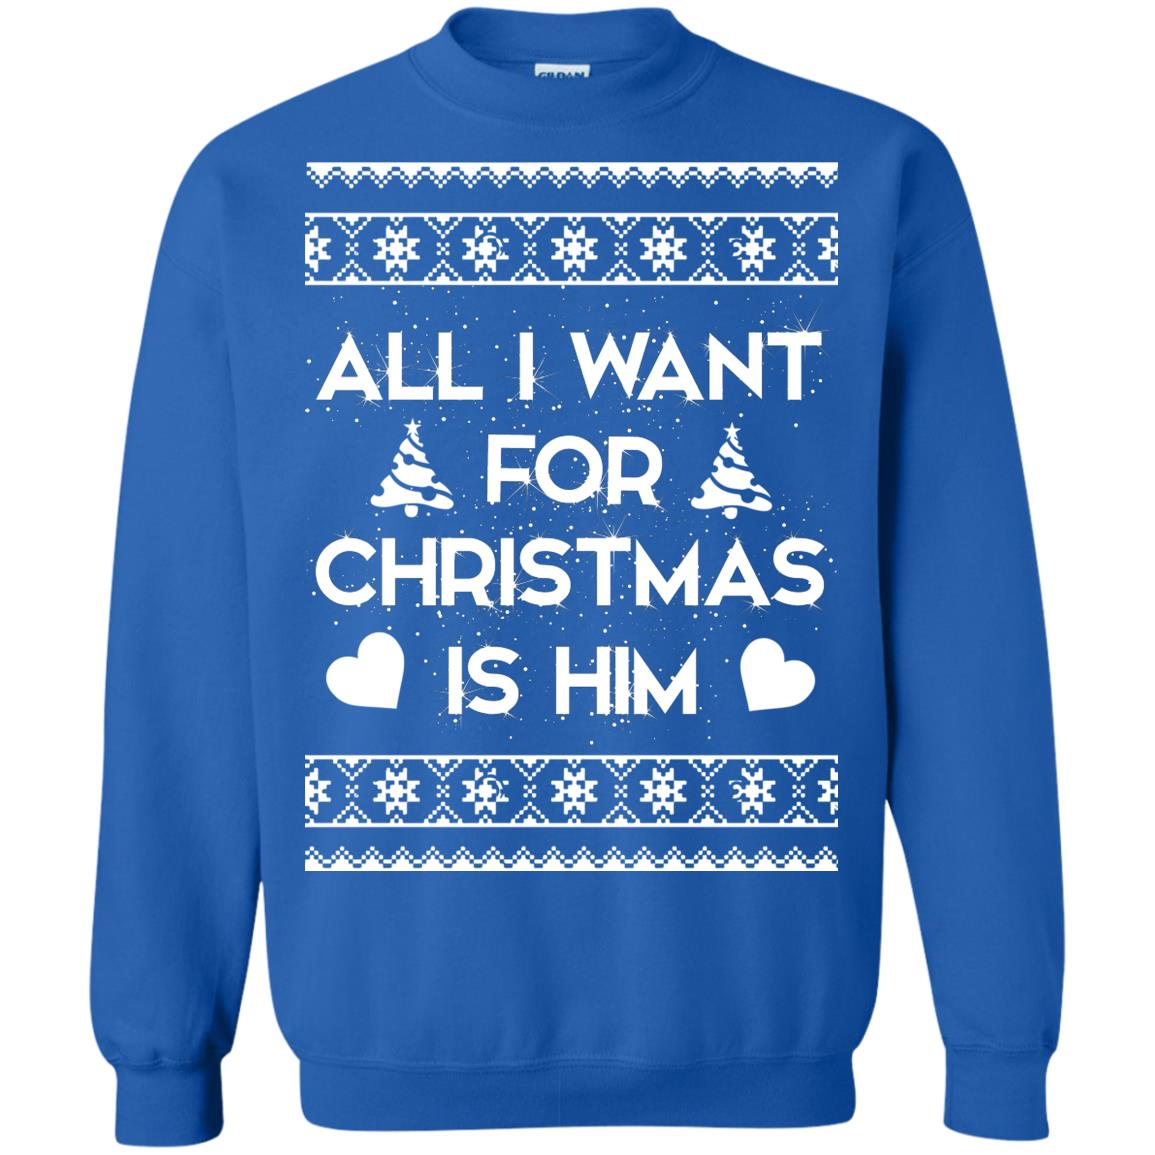 image 2381 - Couple Sweatshirt: All I Want For Christmas Is Him Ugly Sweater, Shirt